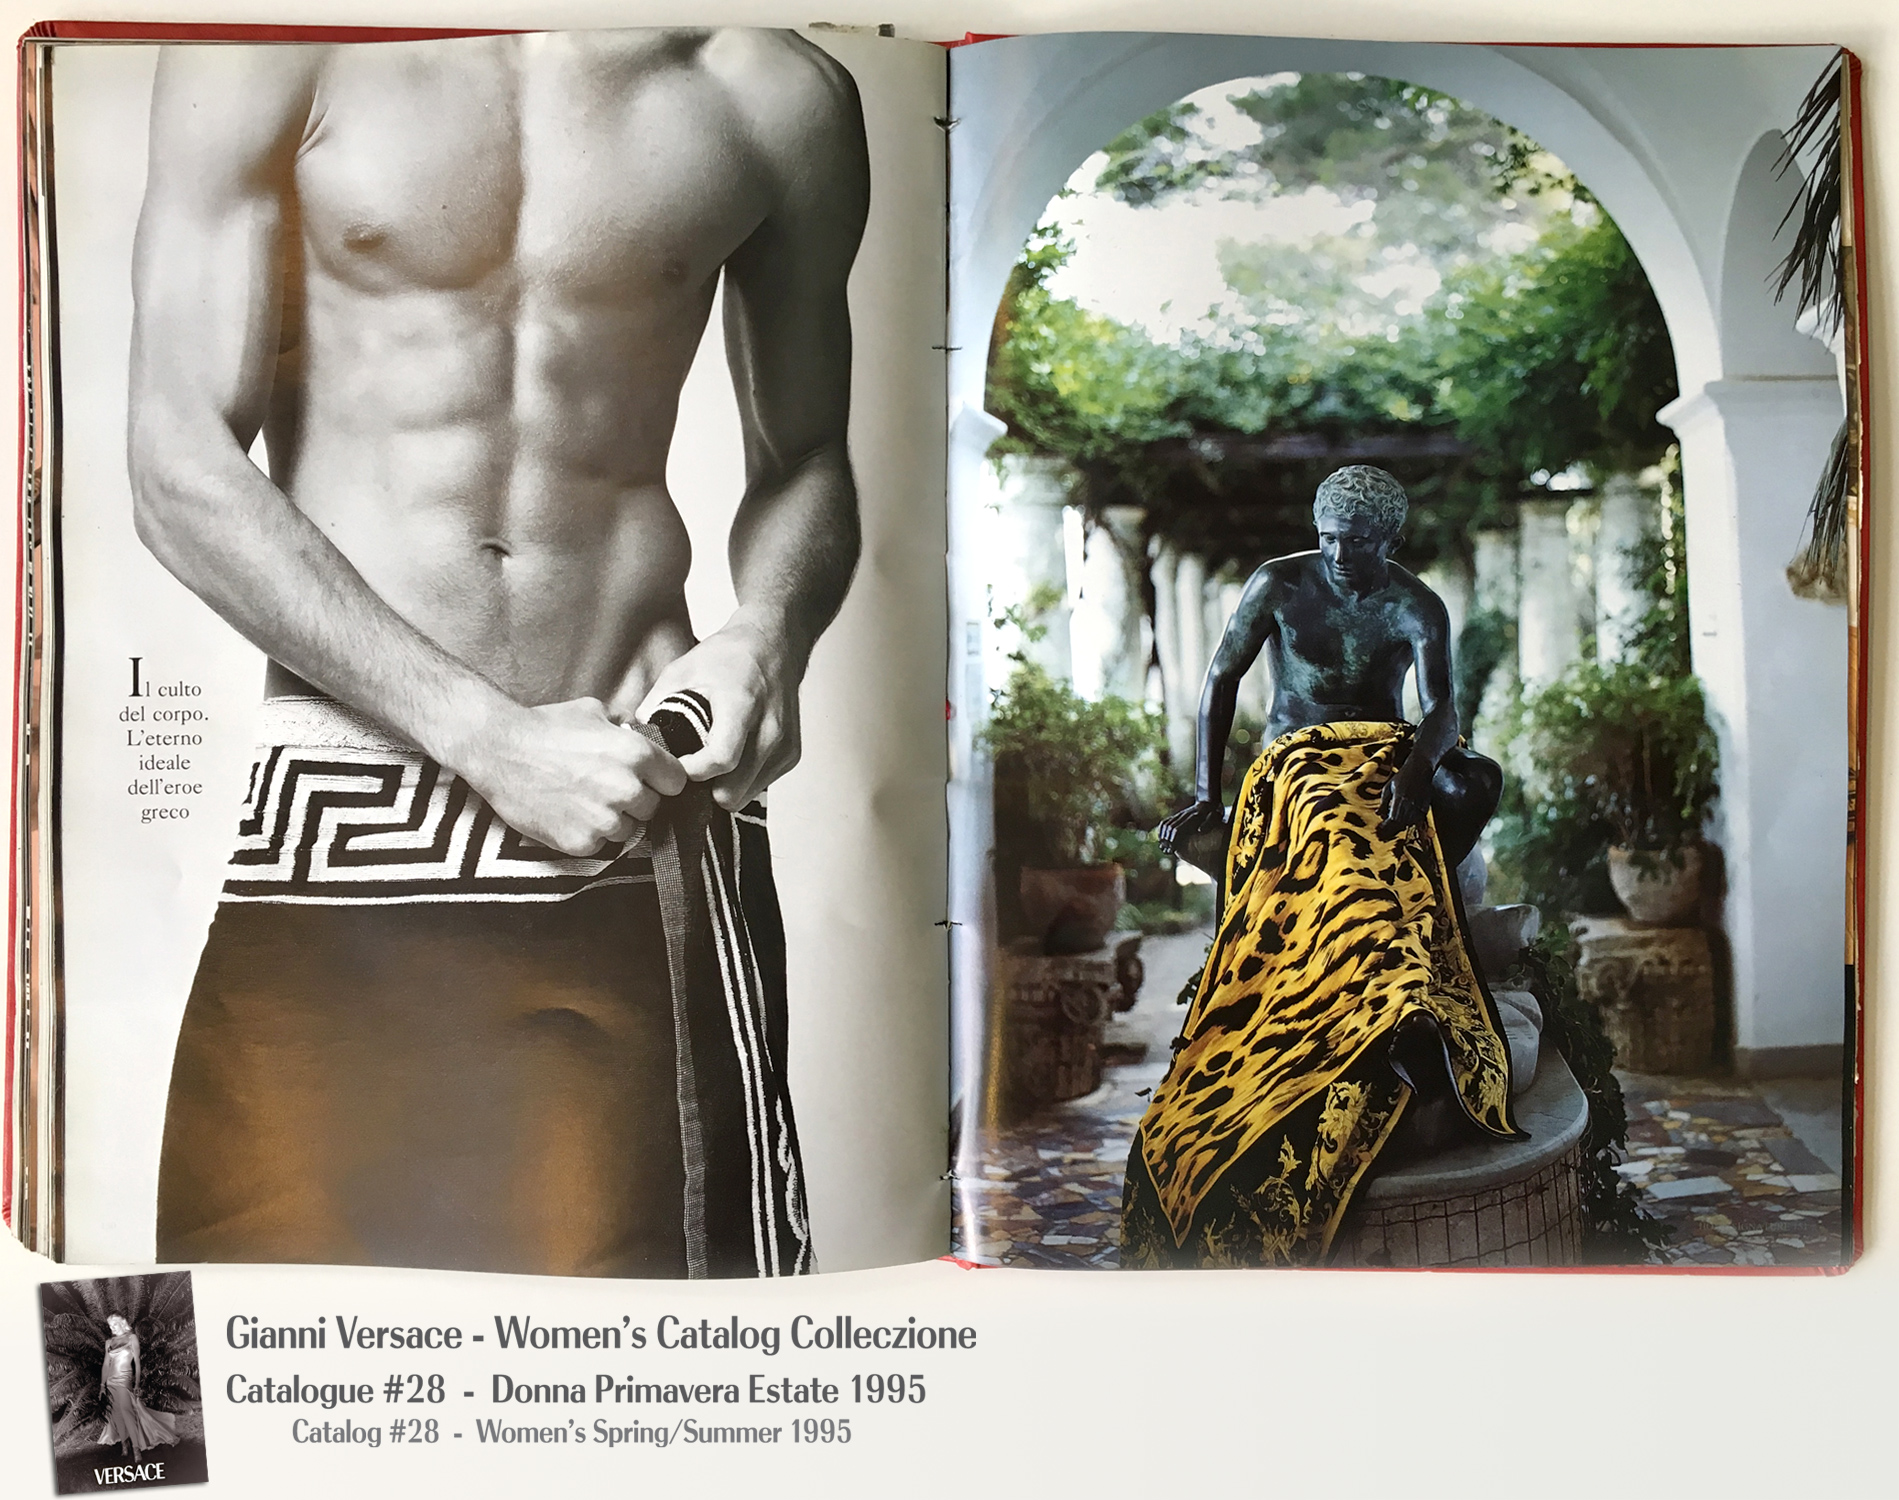 Male Model Towel Naked Greek Key Leopard Capri Gianni Versace Donna Collezione Primavera Estate Woman's Spring Summer Madonna Catalog Fashion Supermodels #28, 1995